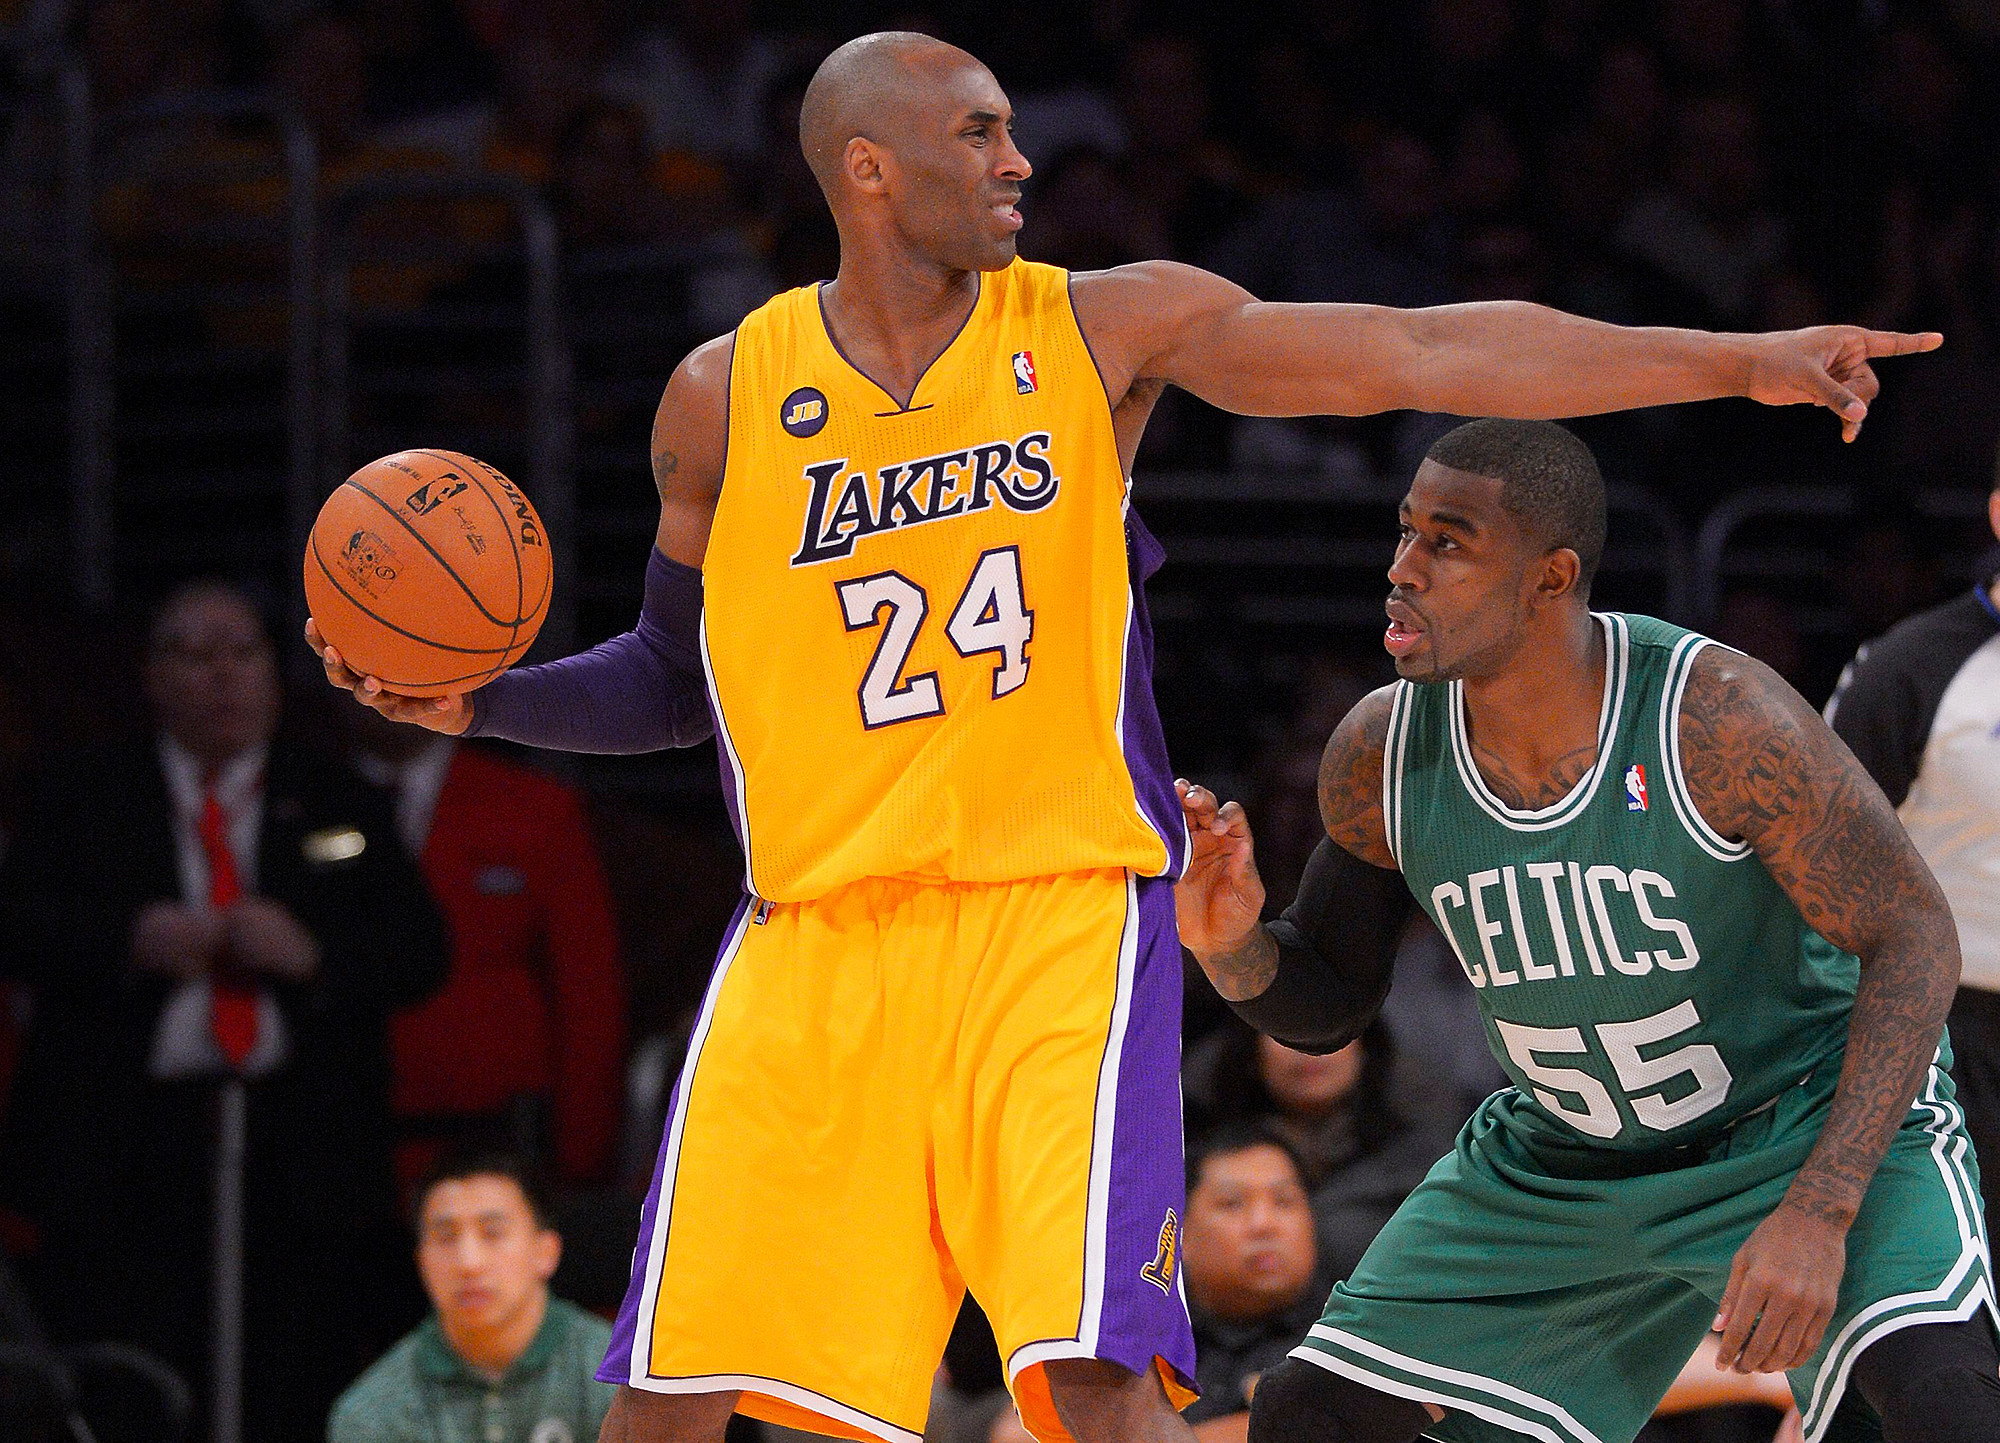 Lakers-Return-to-Practice-For-First-Time-Since-Kobe-Bryant's-Death